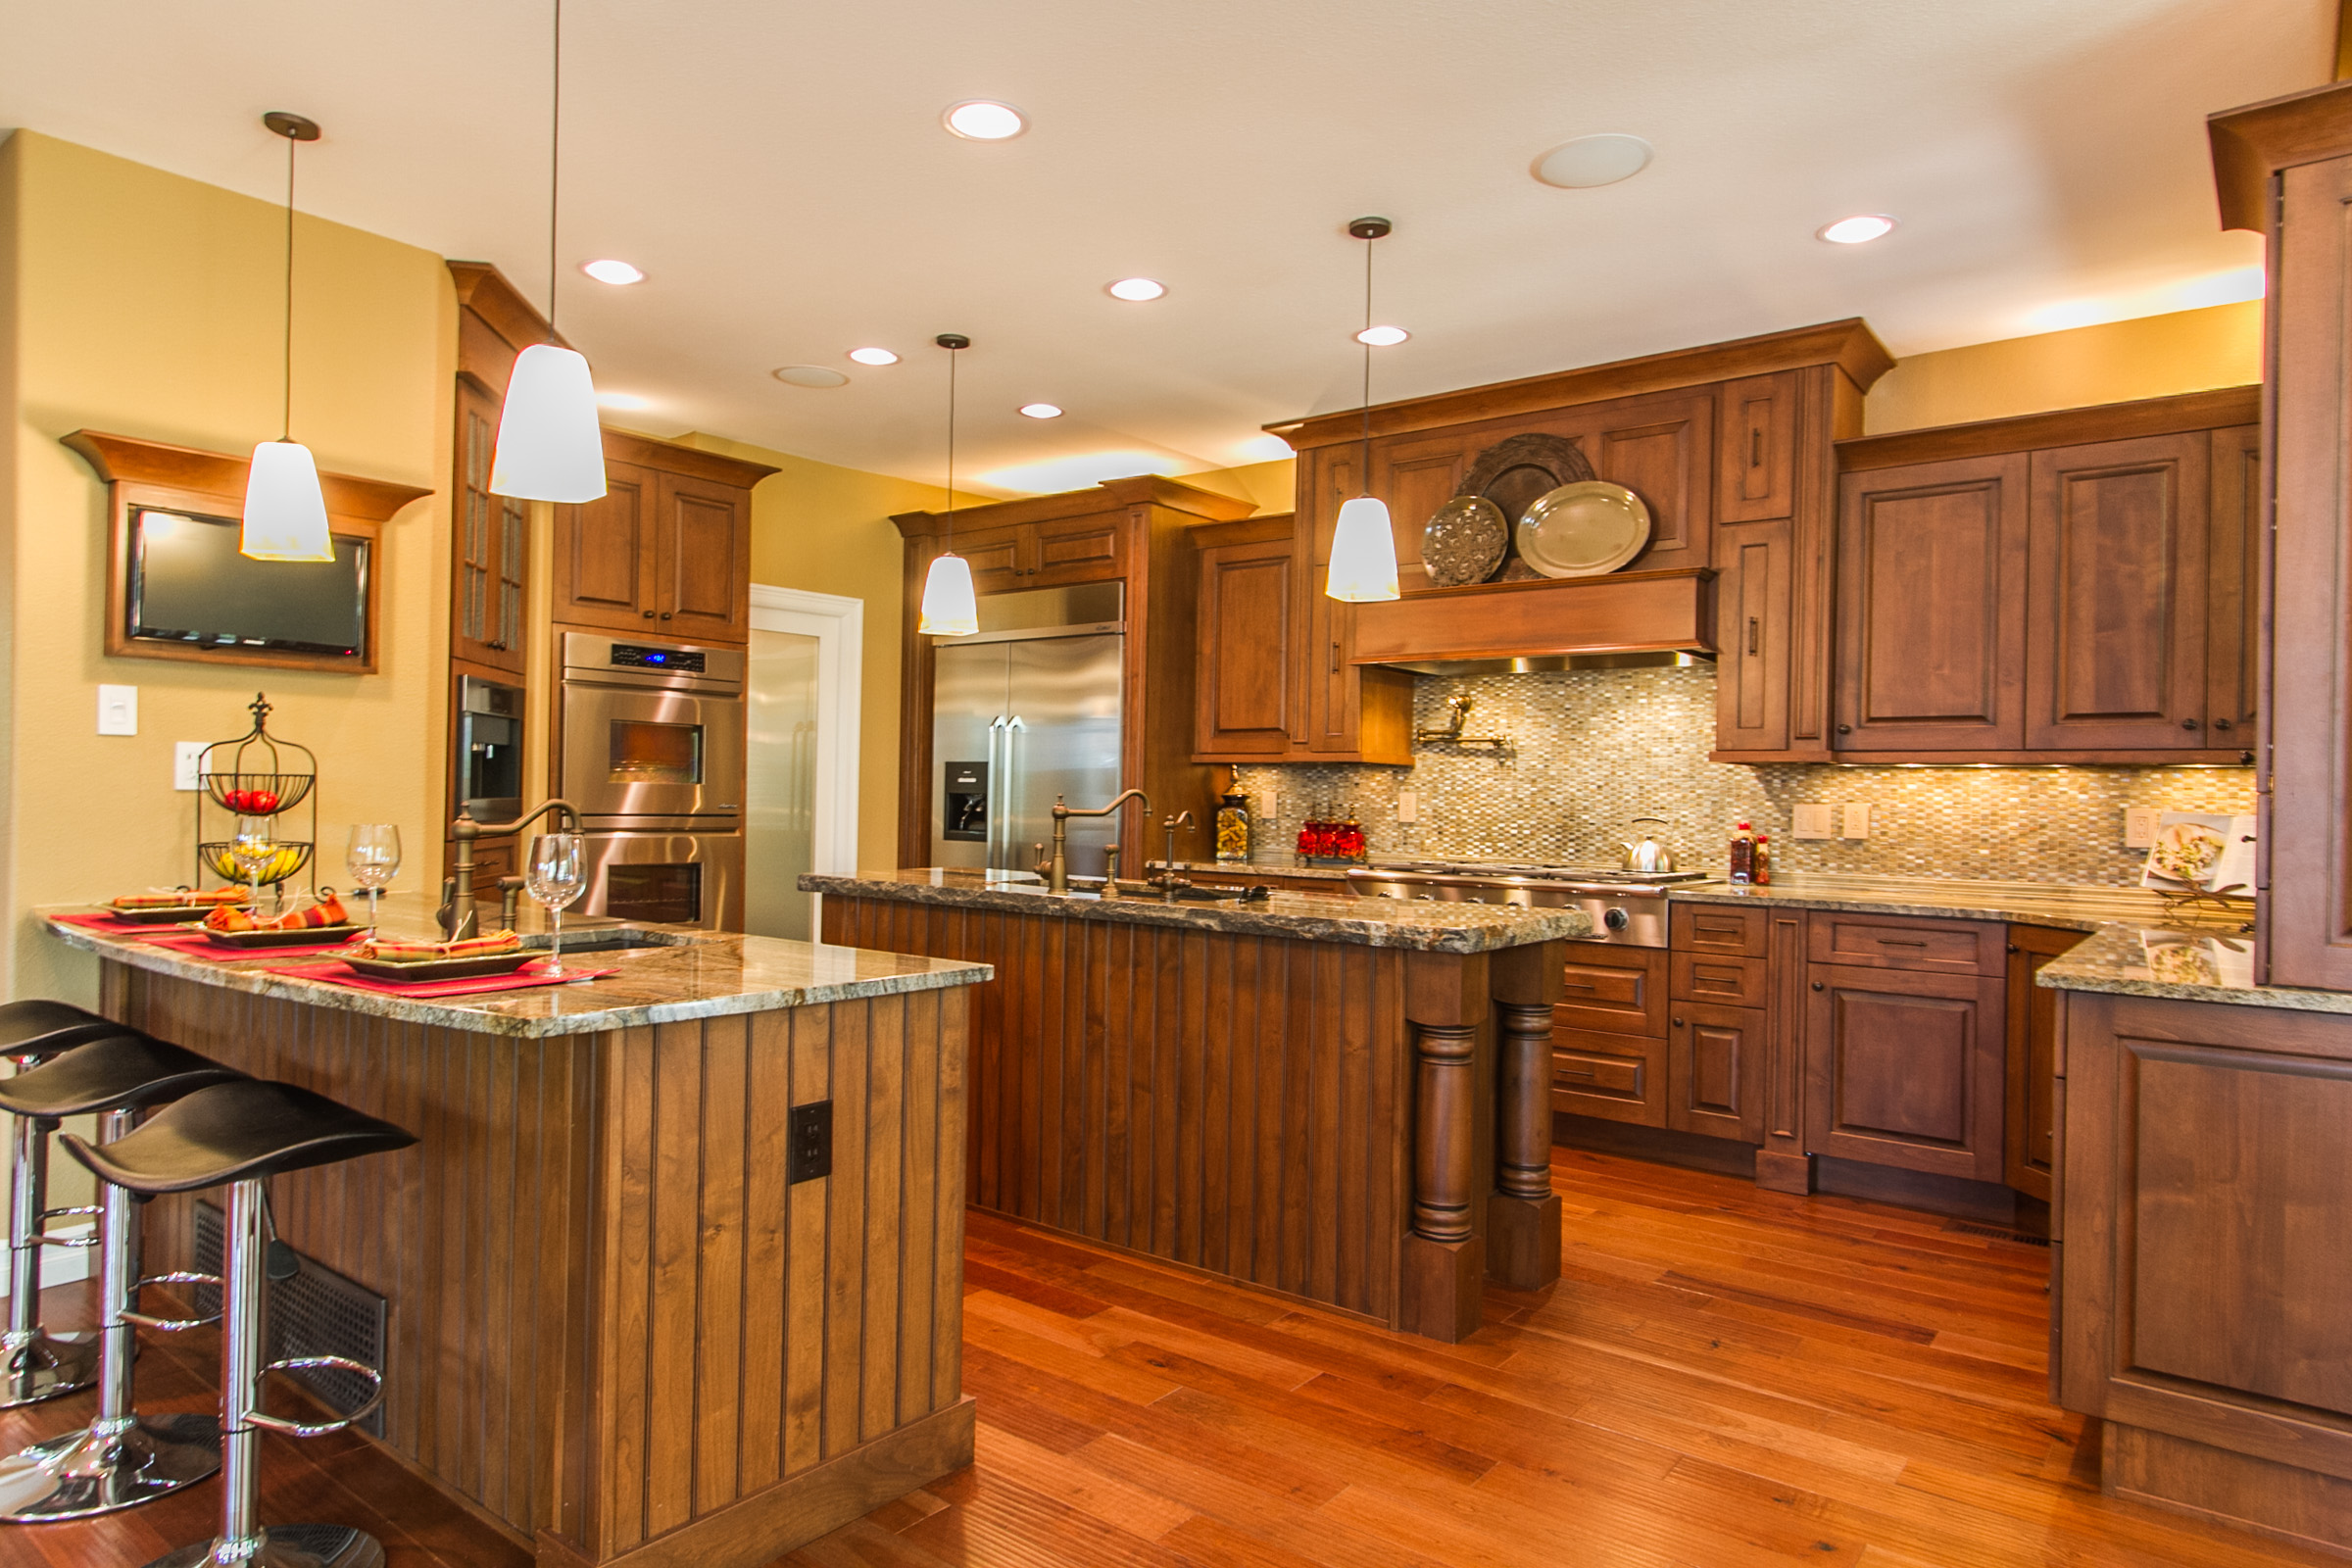 1368067_Recently-Remodeled-Kitchen_high.jpg